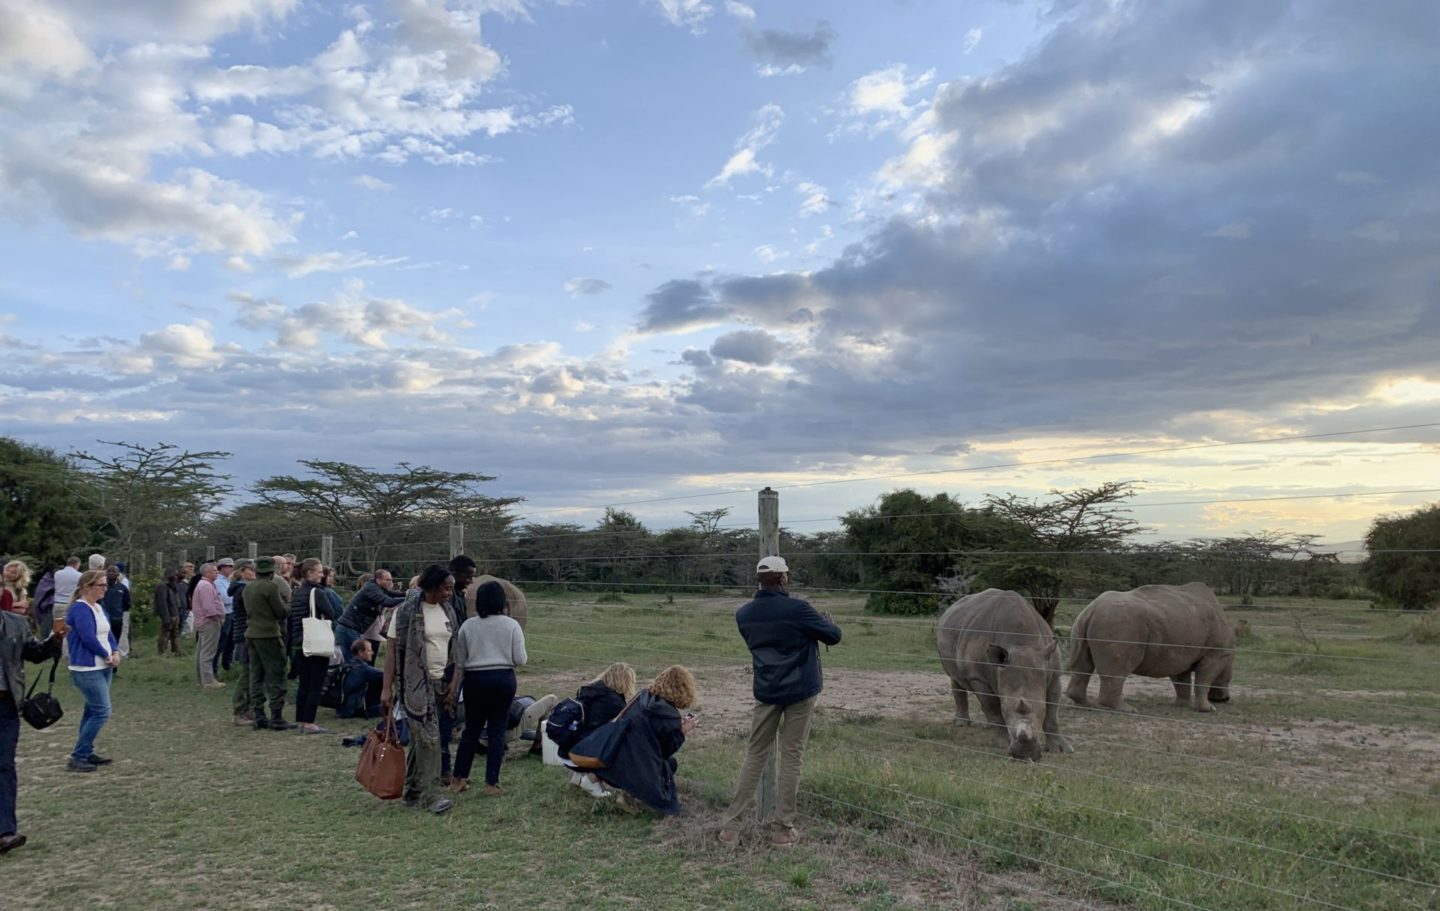 Symposium participants visiting the world's two remaining Northern White Rhino at Ol Pejeta Conservancy